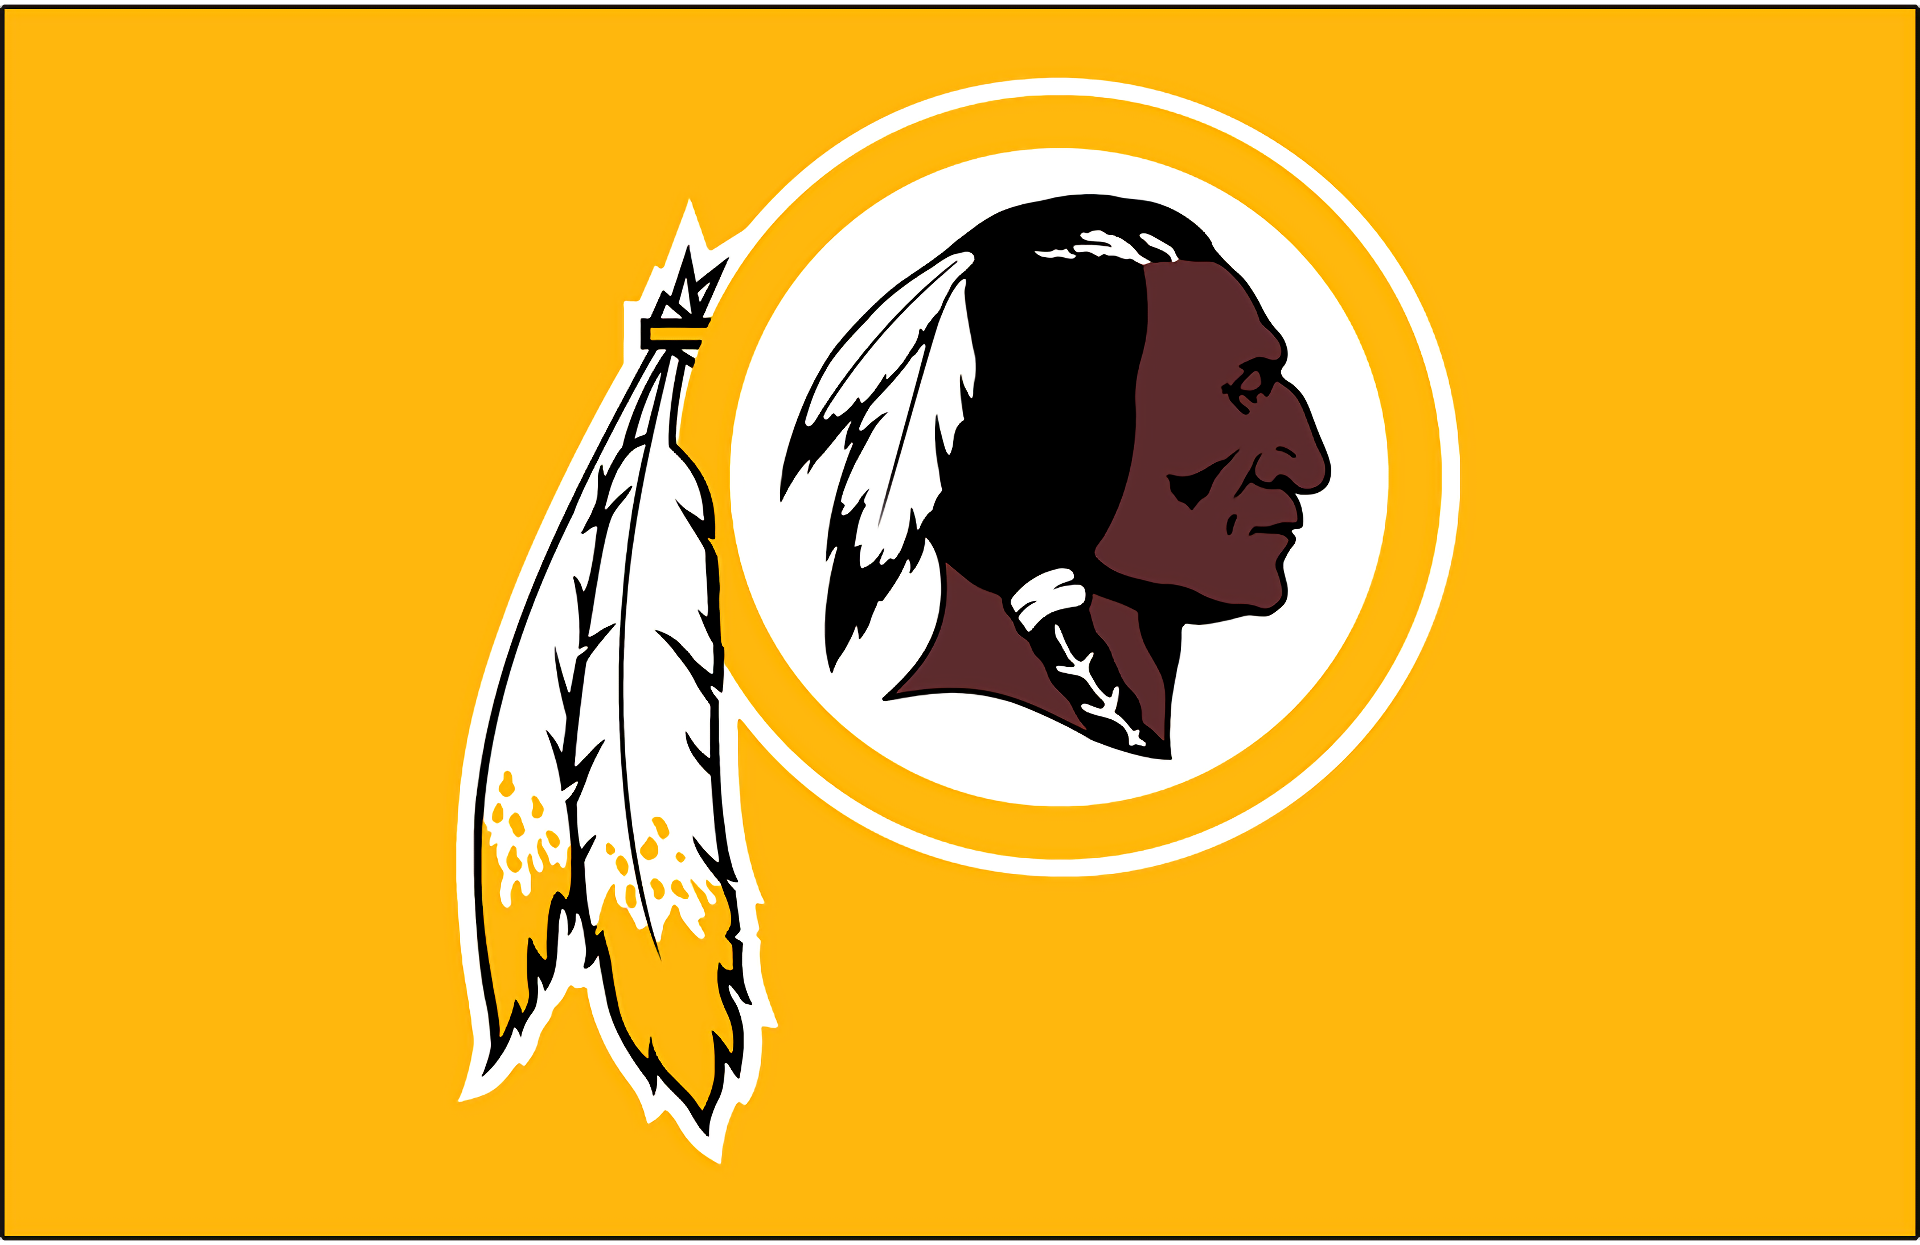 Washington Redskins Hd Wallpaper Background Image 1920x1245